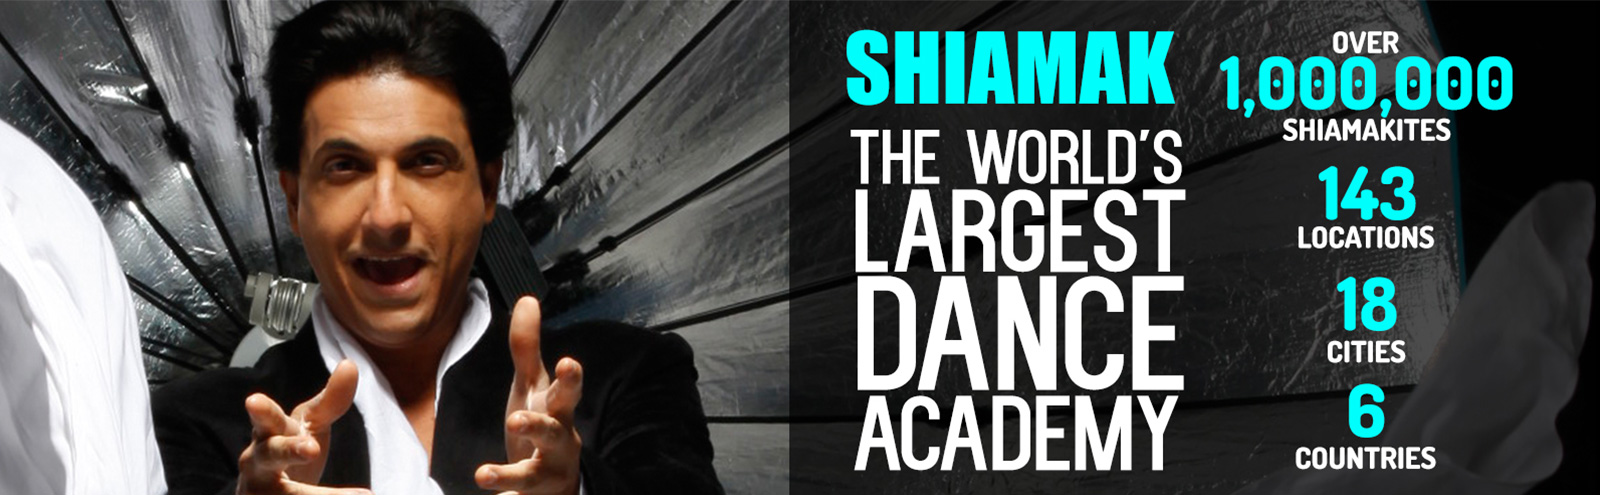 World's Largest Dance Academy